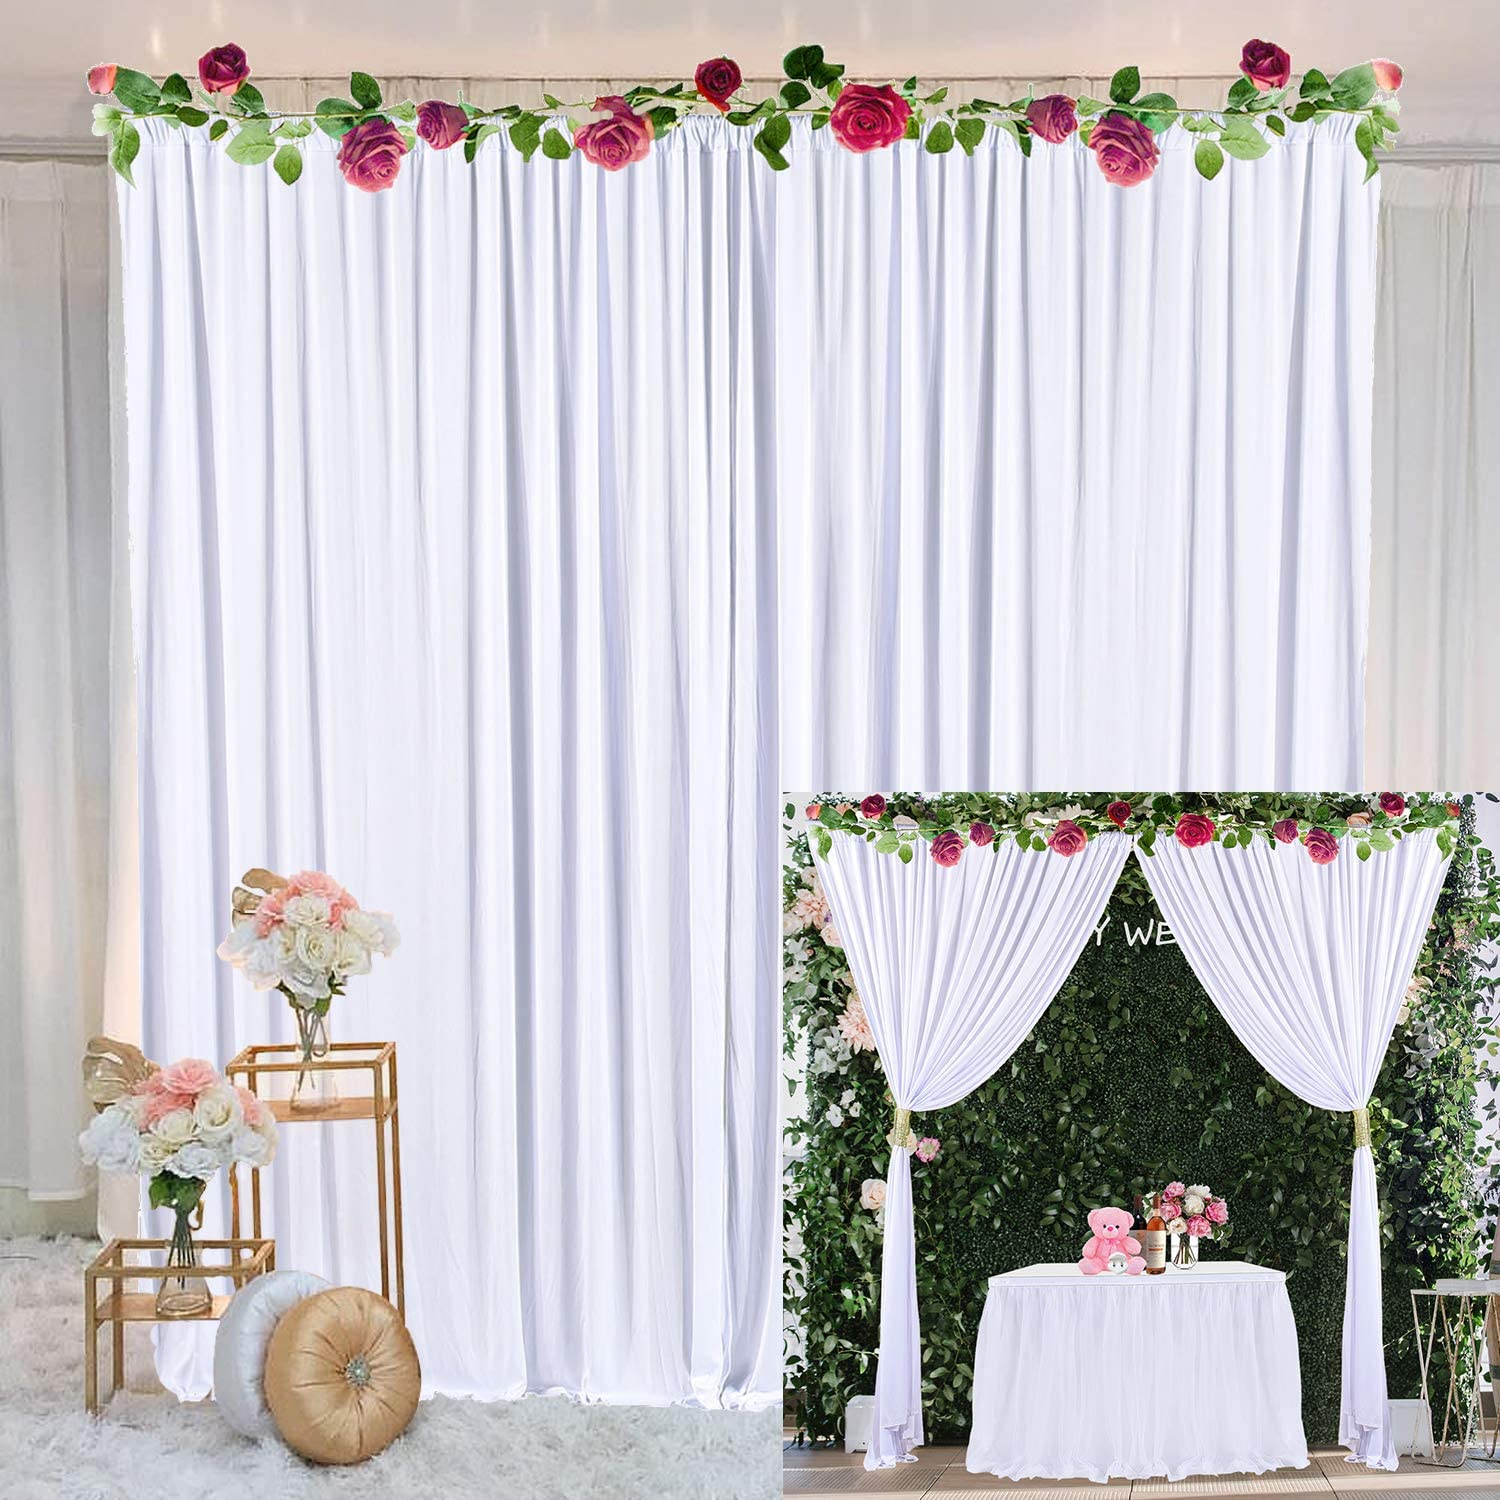 White Backdrop Curtain for Parties Weddings Baby Shower Birthday Photography Drape Backdrop with Golden Curtain Tiebacks 5ft x 7ft (Pack of Two)